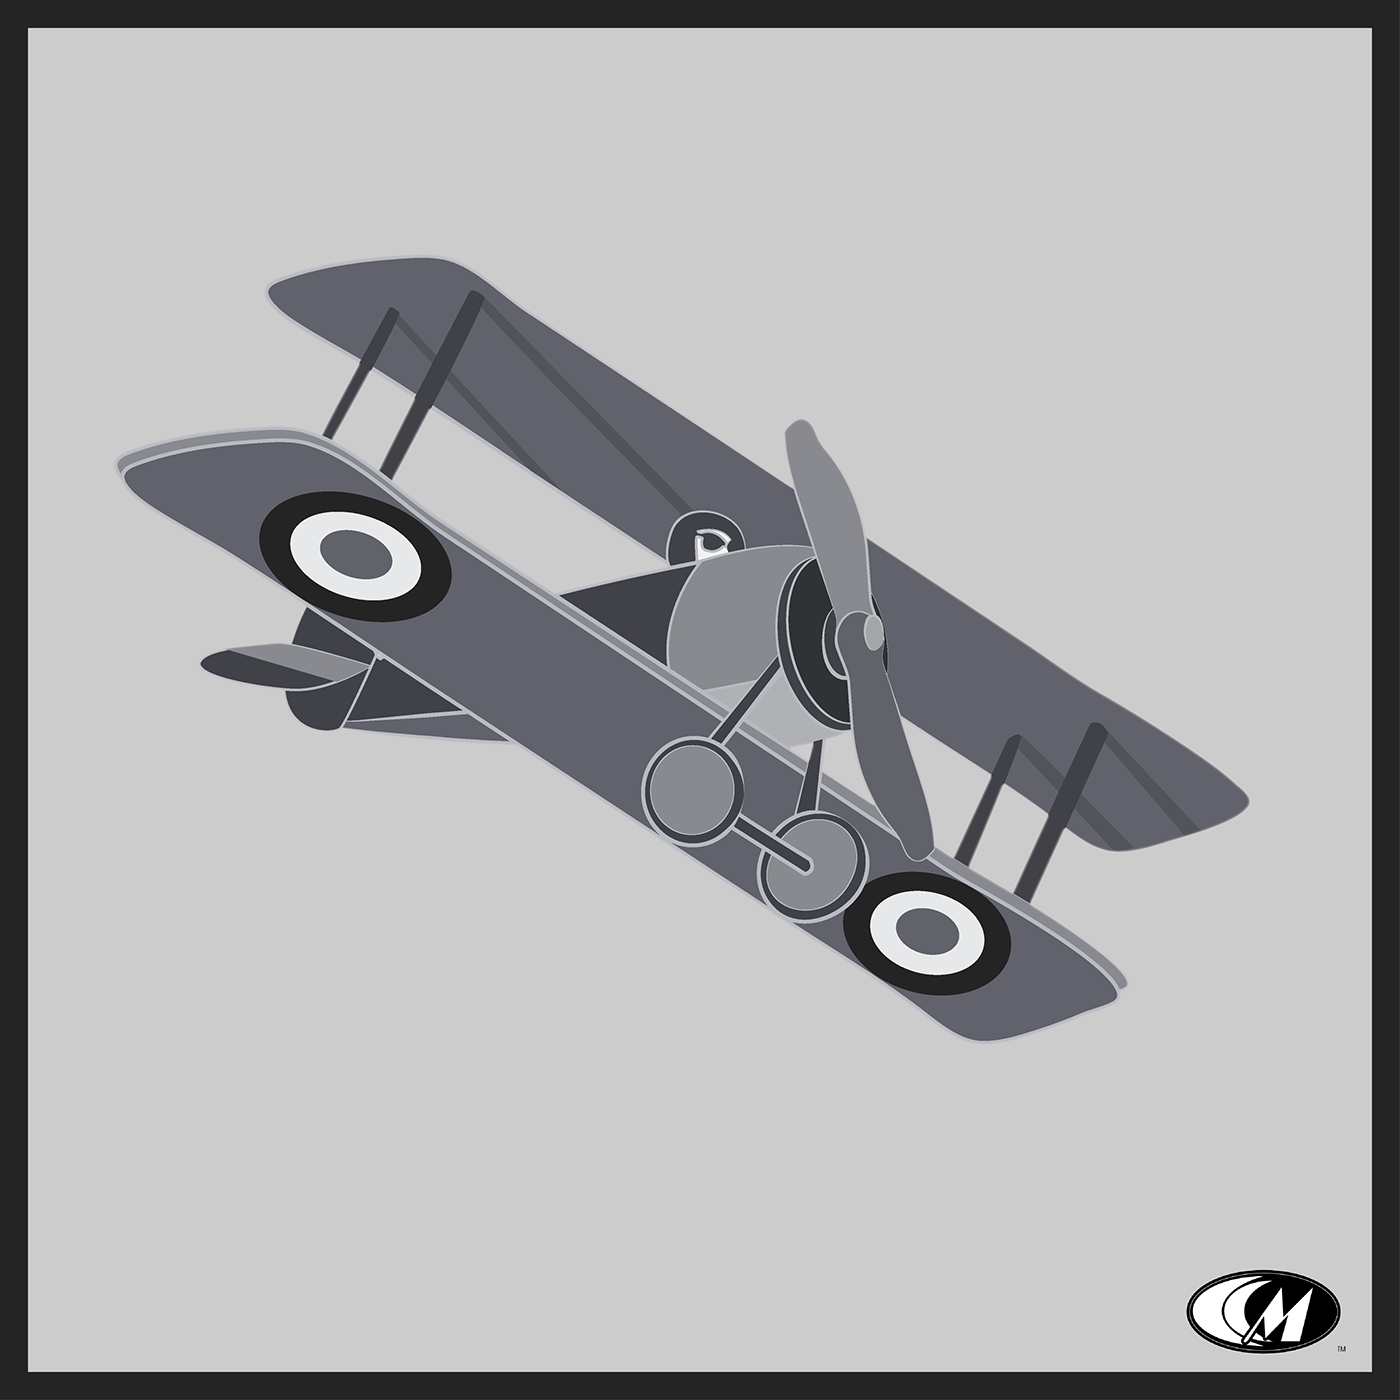 Pilot WWI airplane britain fighter aircraft minimalist air force Flying vintage greyscale